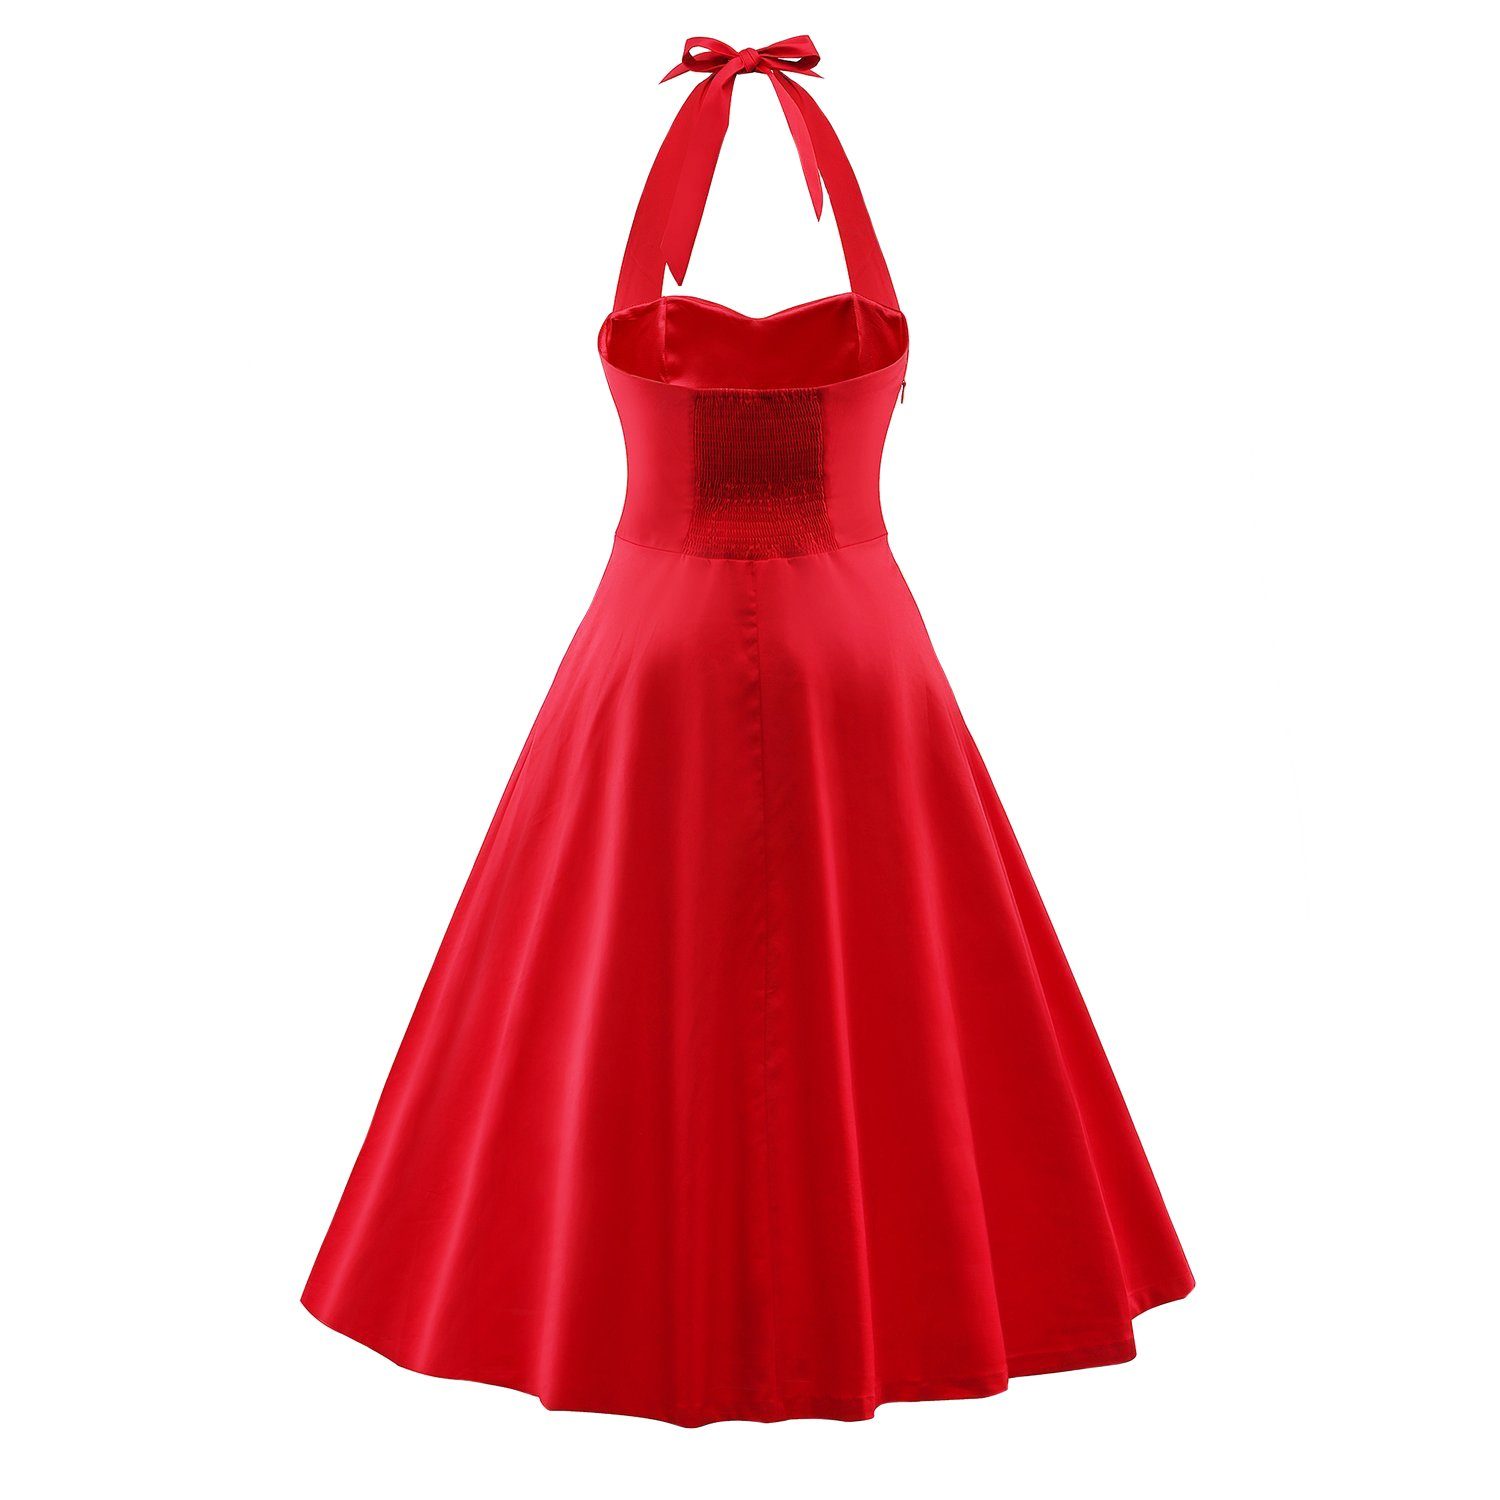 244a76ac5a Tecrio Vintage 1950 s Marilyn Monroe Style Rockabilly Halter Party Swing  Dress at Amazon Women s Clothing store